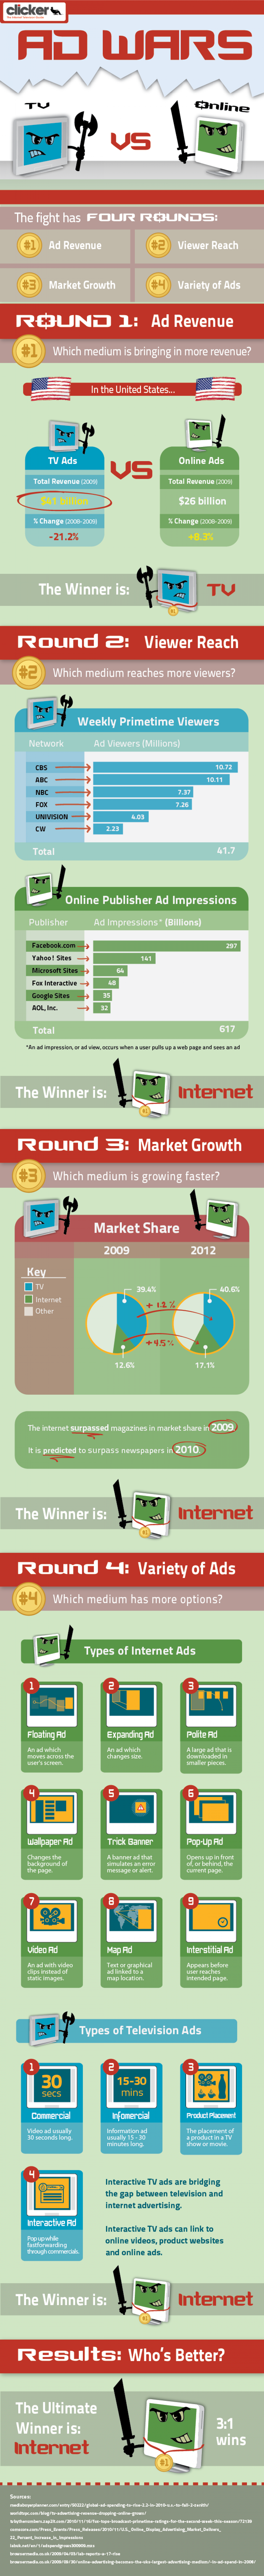 Ad Wars Infographic